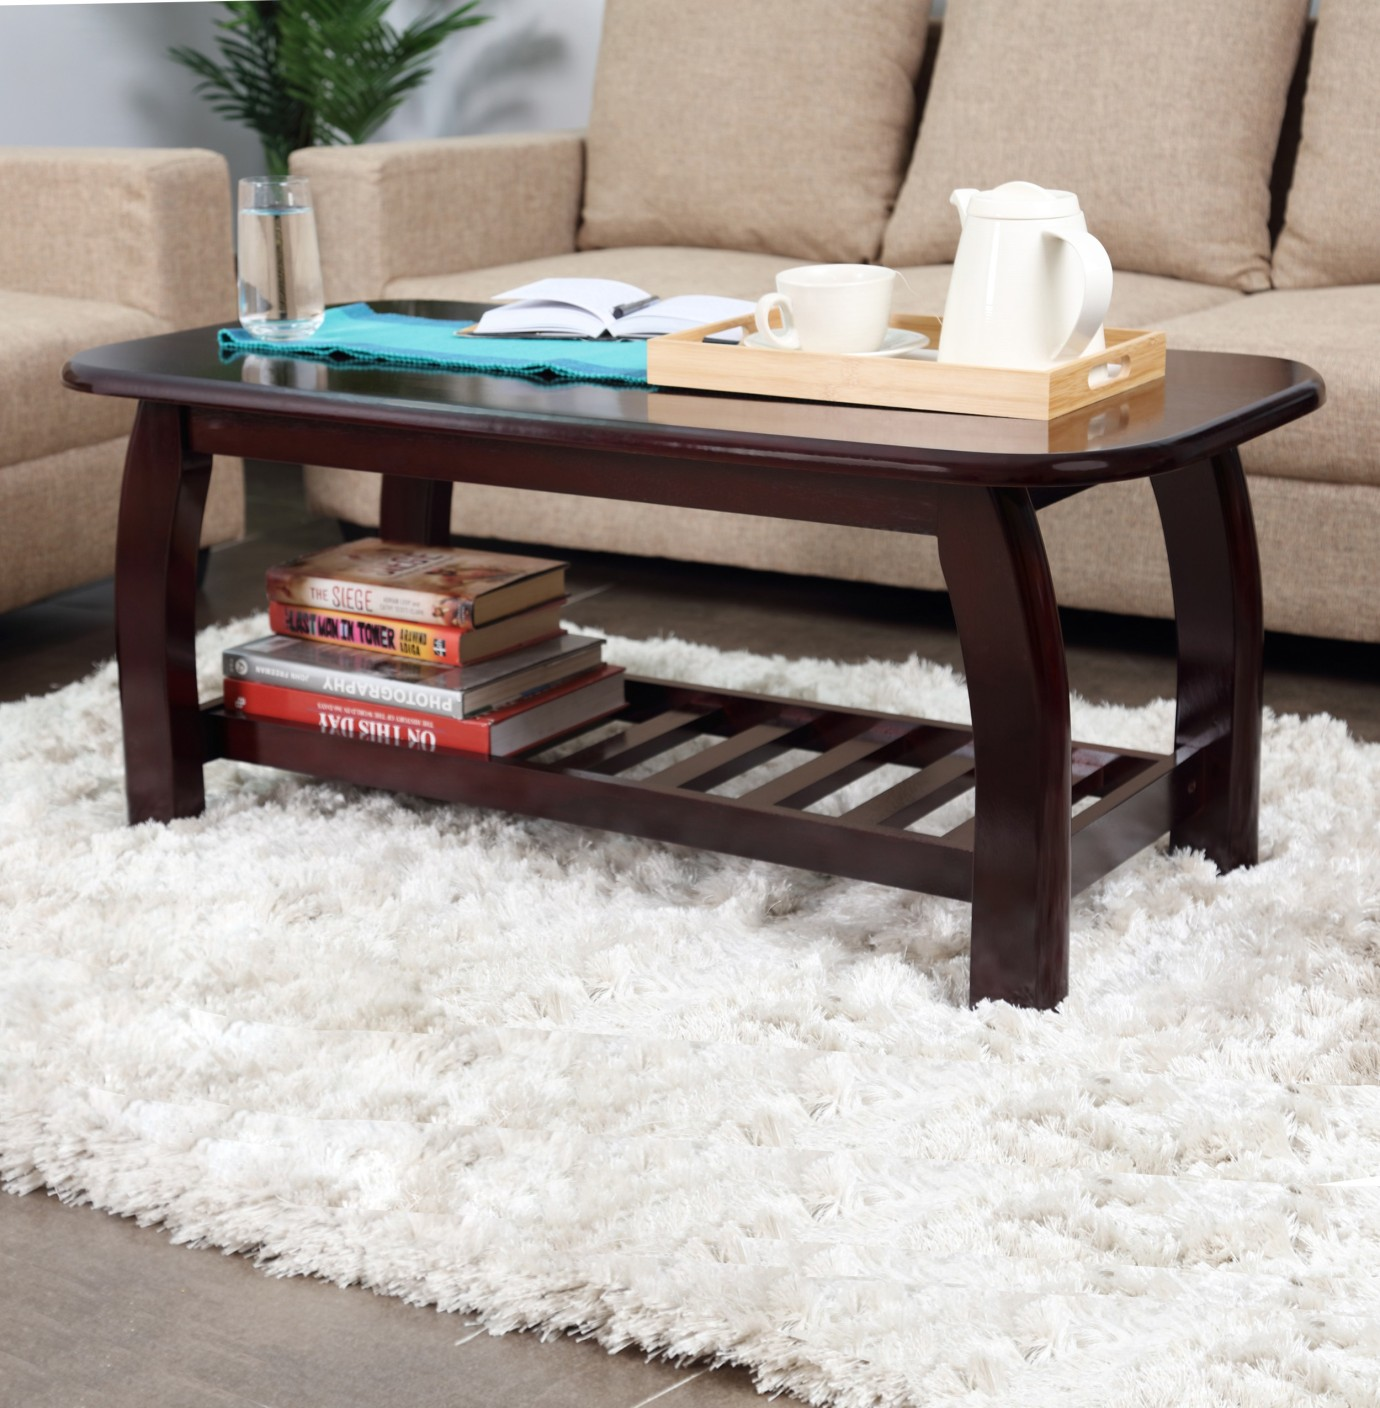 Solid Wood Coffee Table Online India: Woodness Solid Wood Coffee Table Price In India